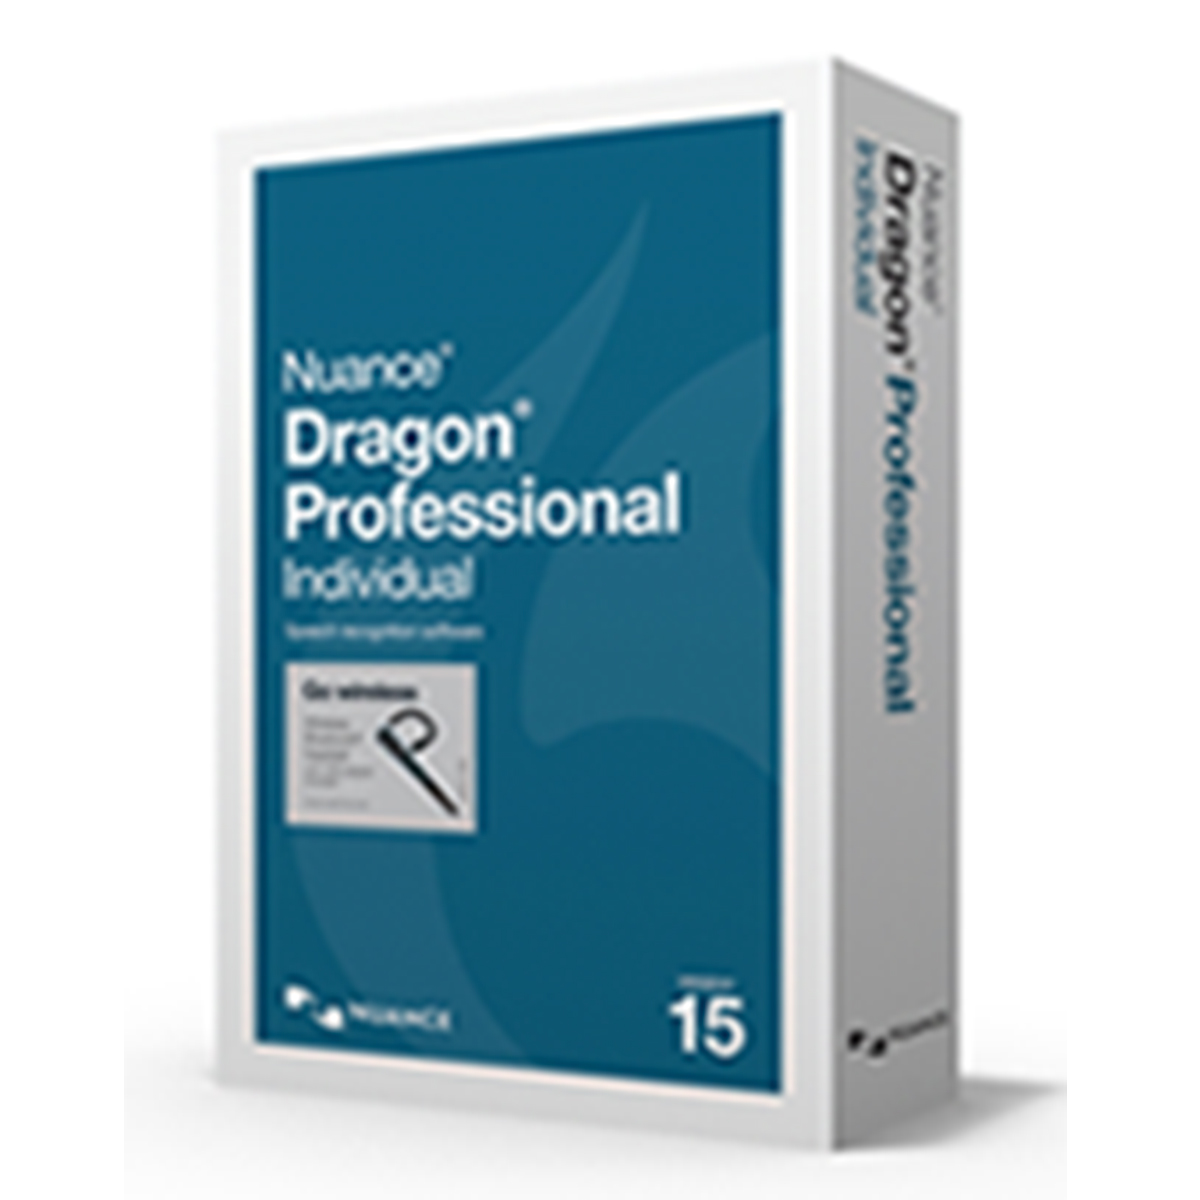 Nuance Dragon Professional Individual 15 - English Wireless Box Copy